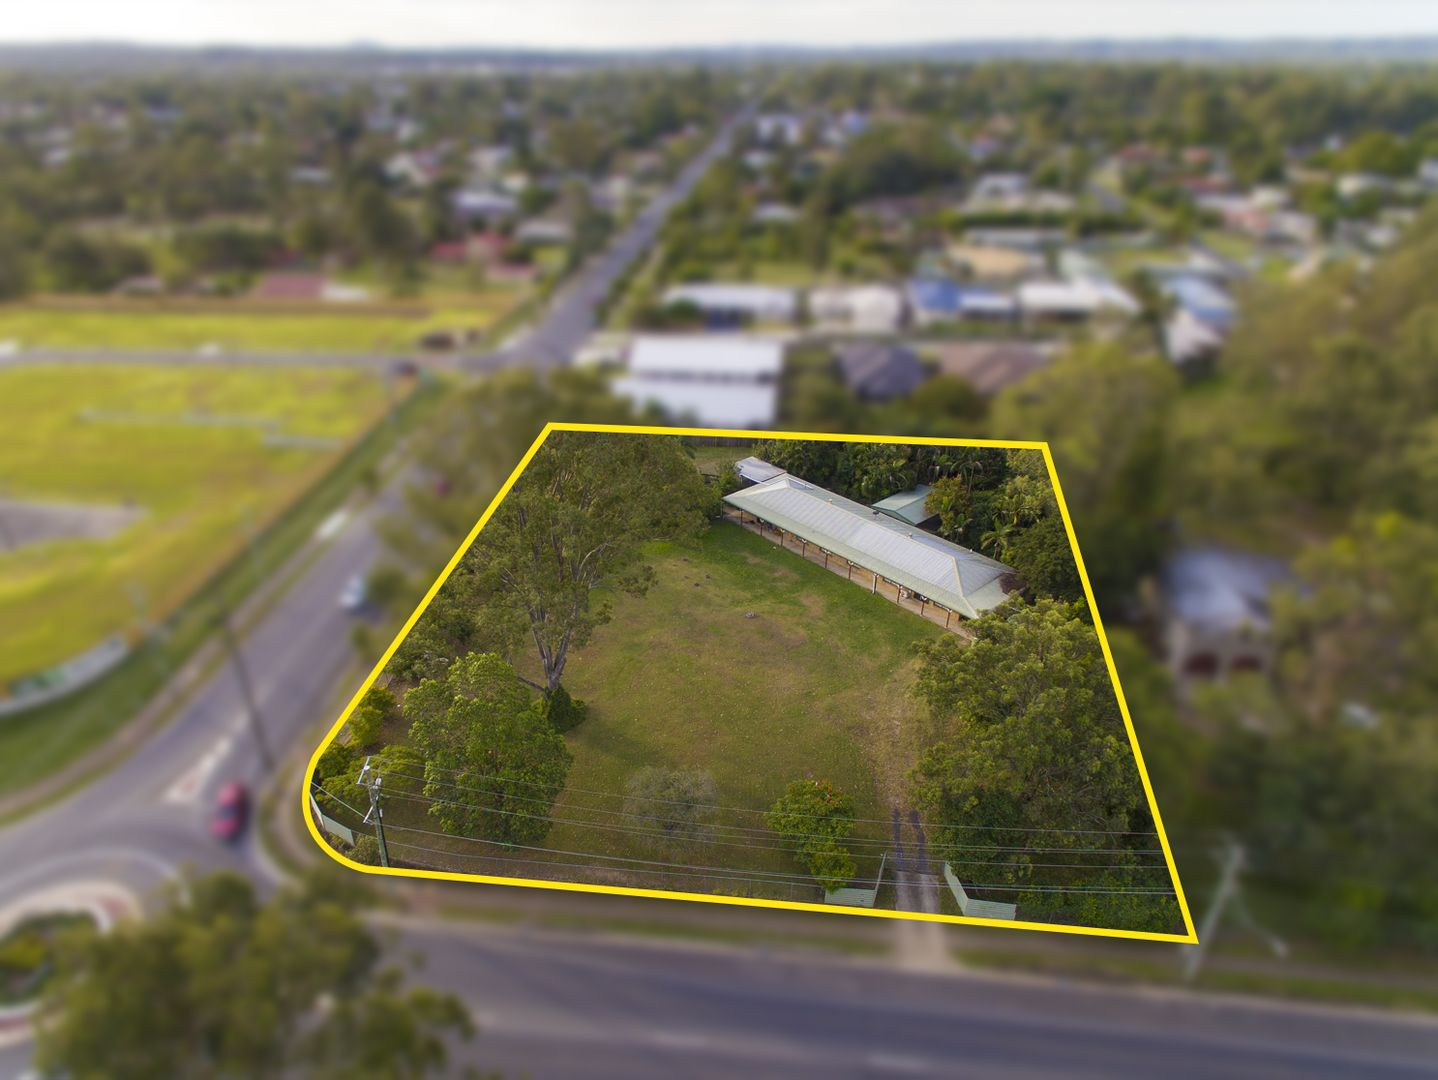 83-87 Beutel Street, Waterford West QLD 4133, Image 2